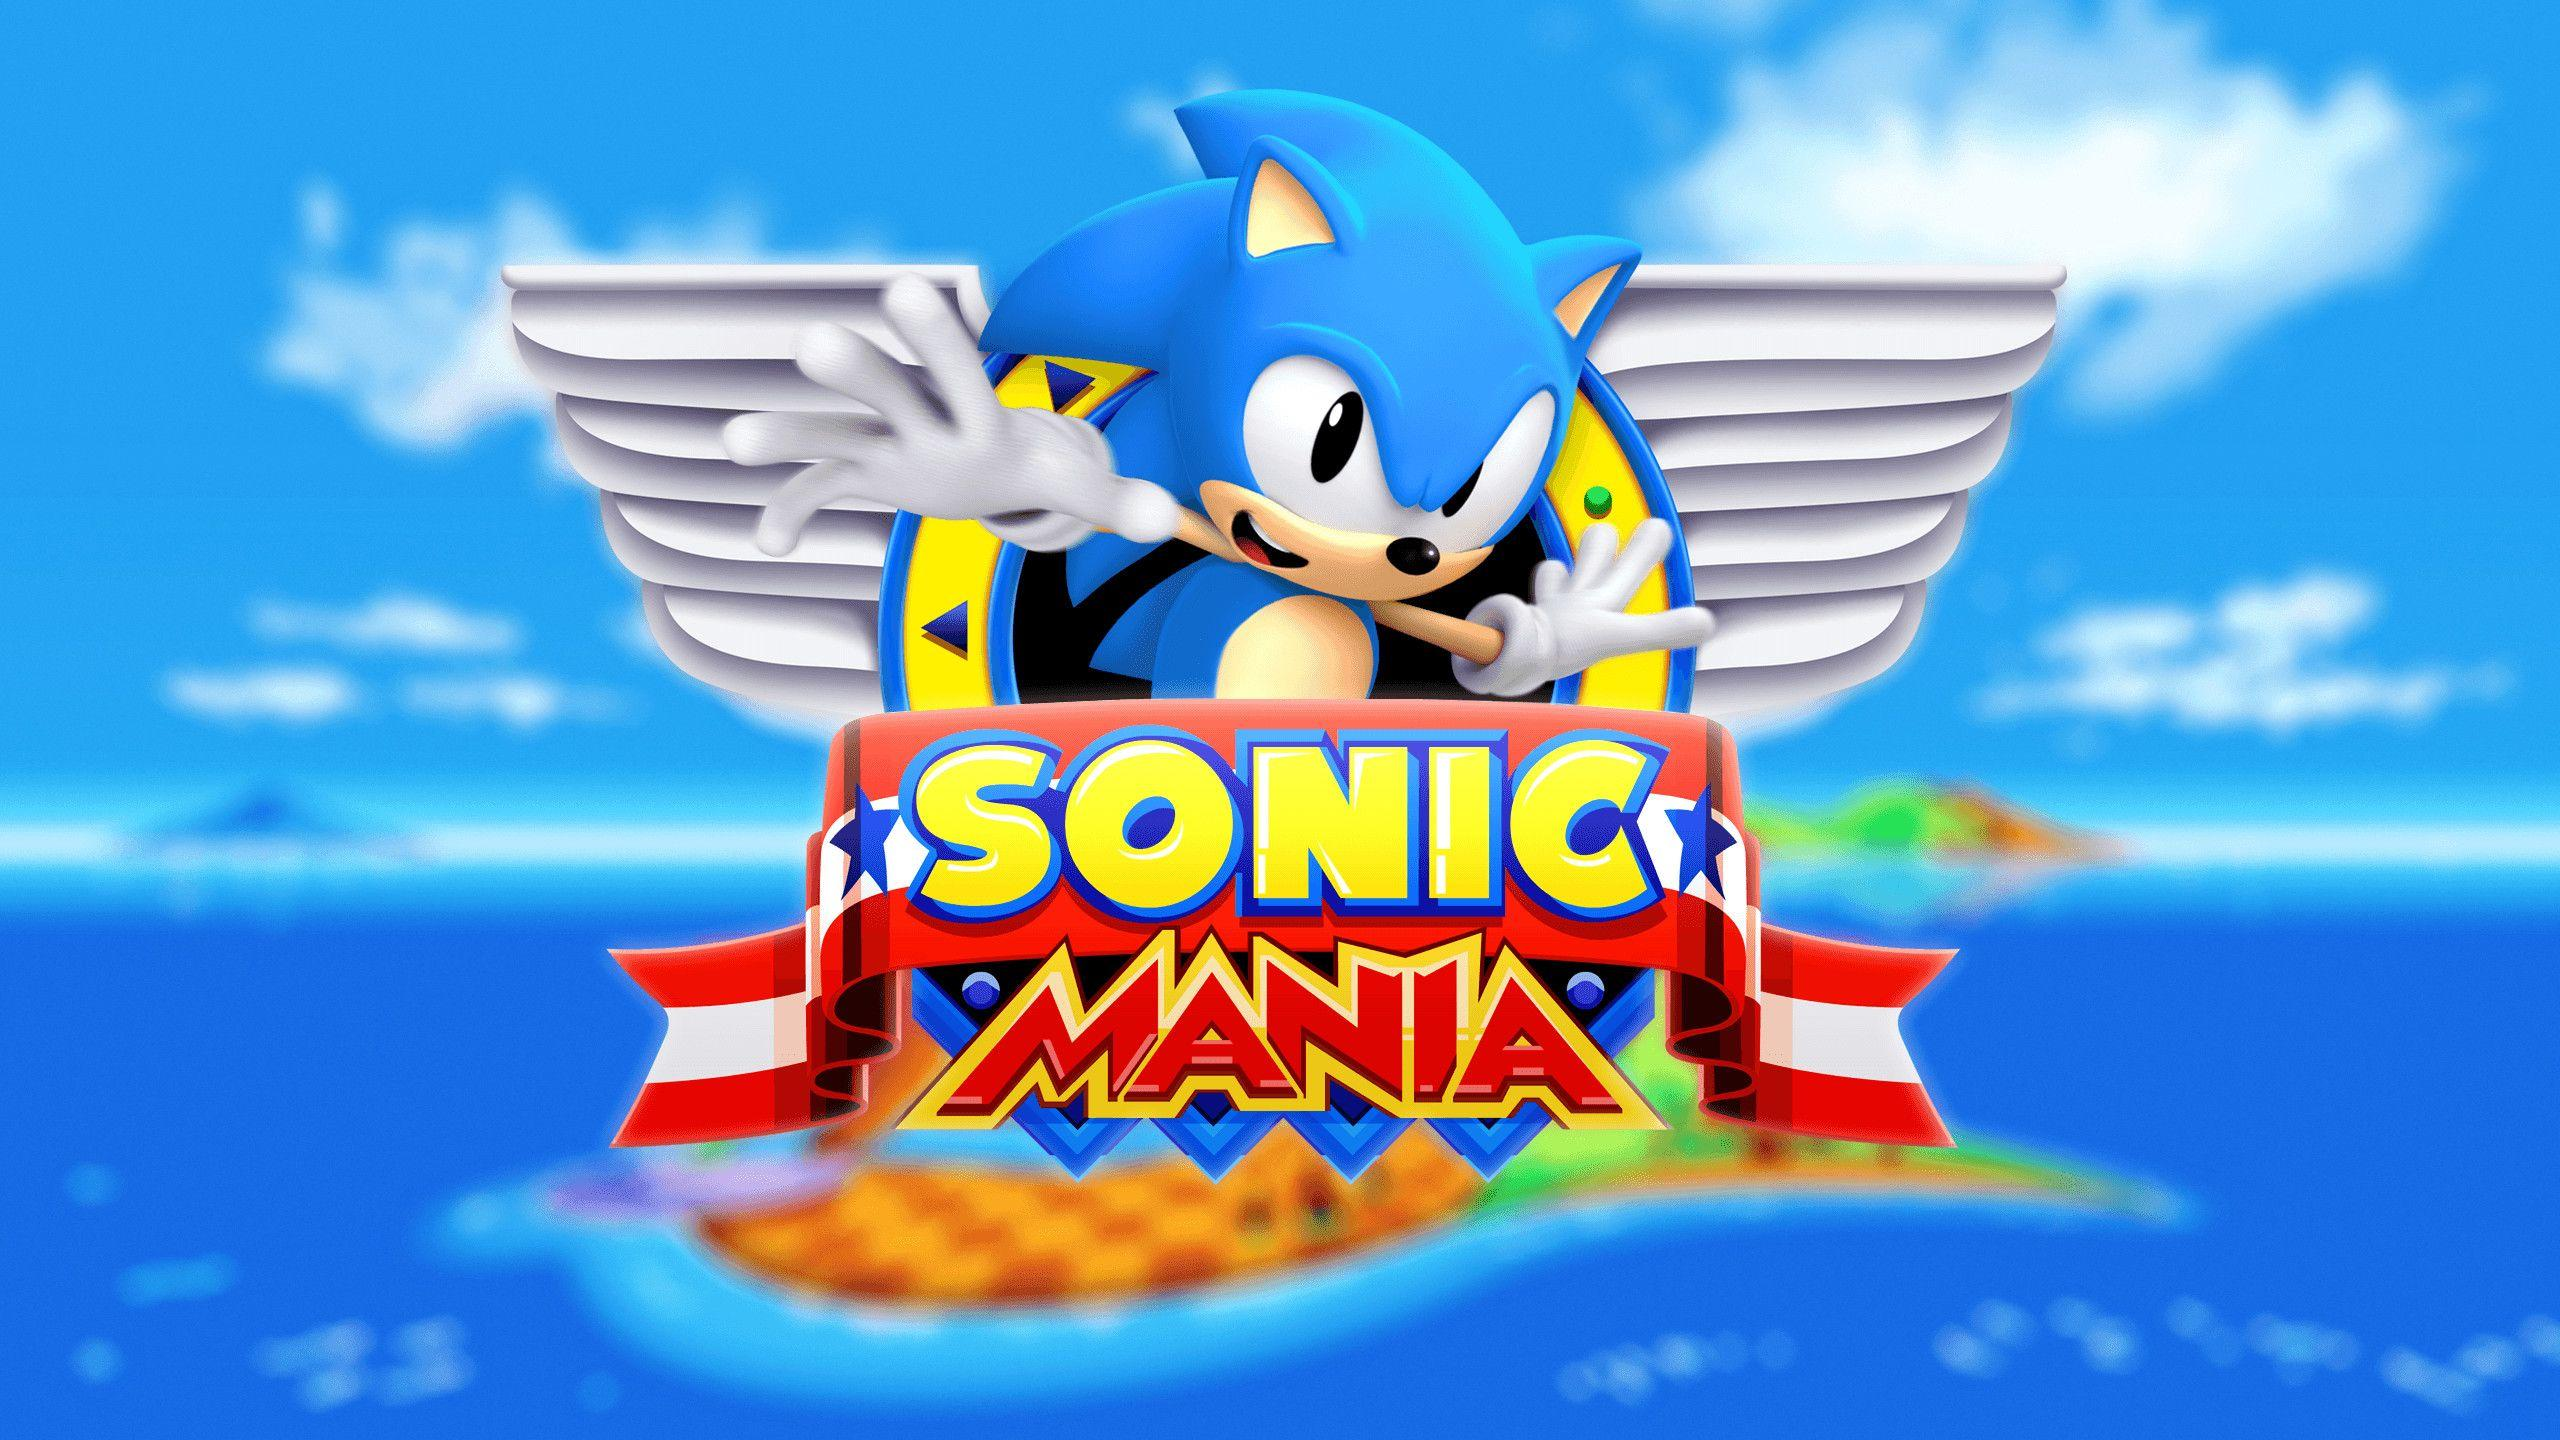 Sonic Mania Wallpapers ·①